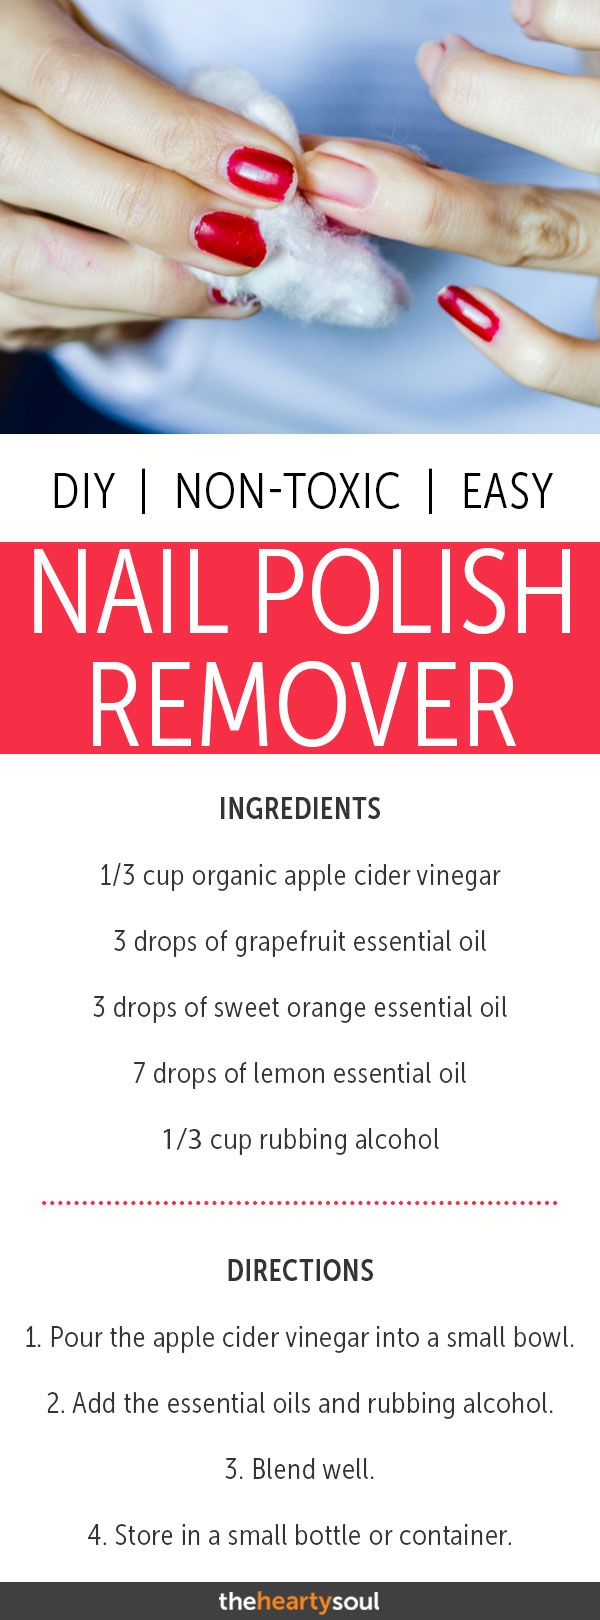 How to Make Non-Toxic Nail Polish Remover with Grapefruit, Orange, and Lemon Oils #diybeauty